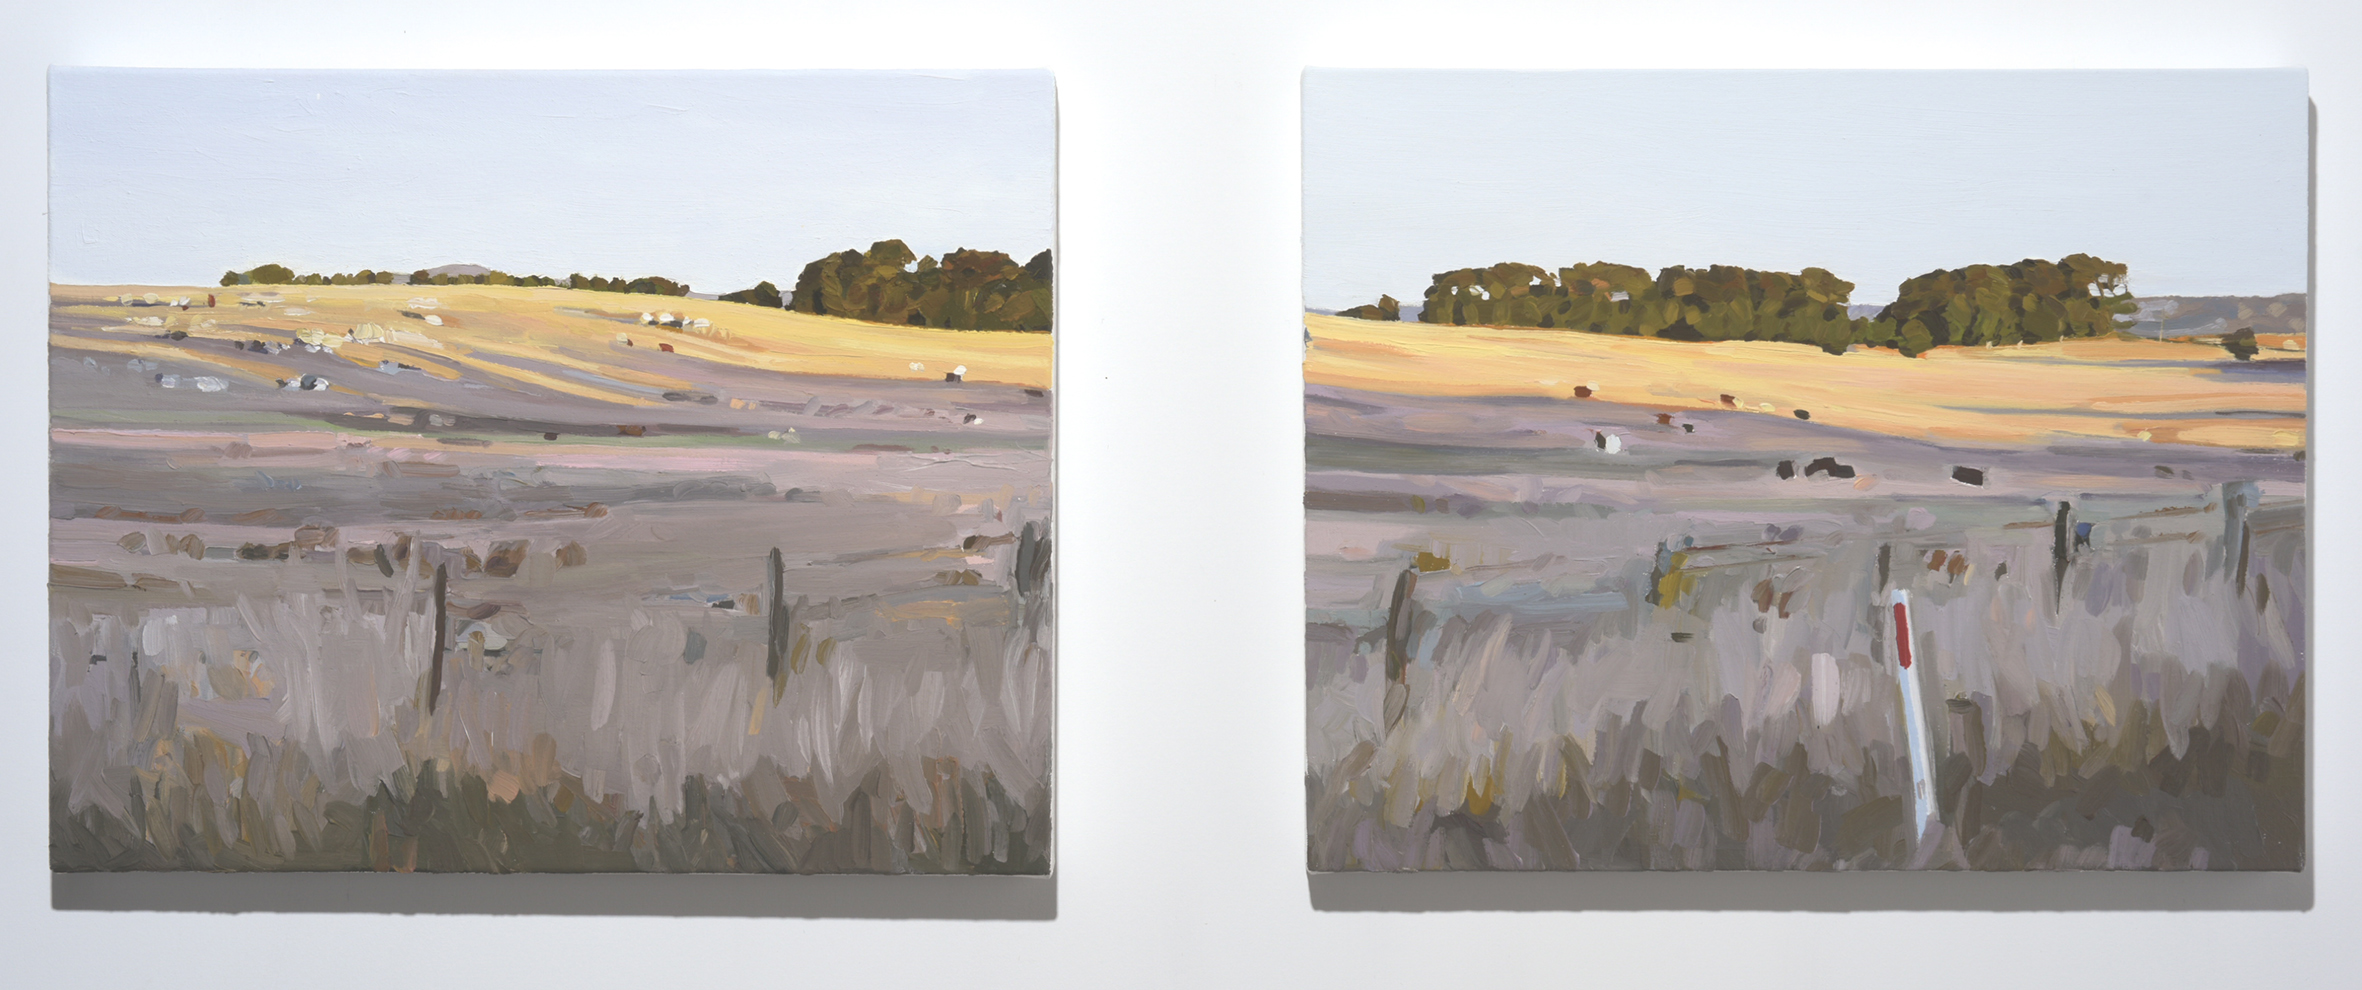 Scenes from an afternoon No.5  2018. Oil on canvas.  2 panels each 40.5 x 51 cm. $2,400 SOLD